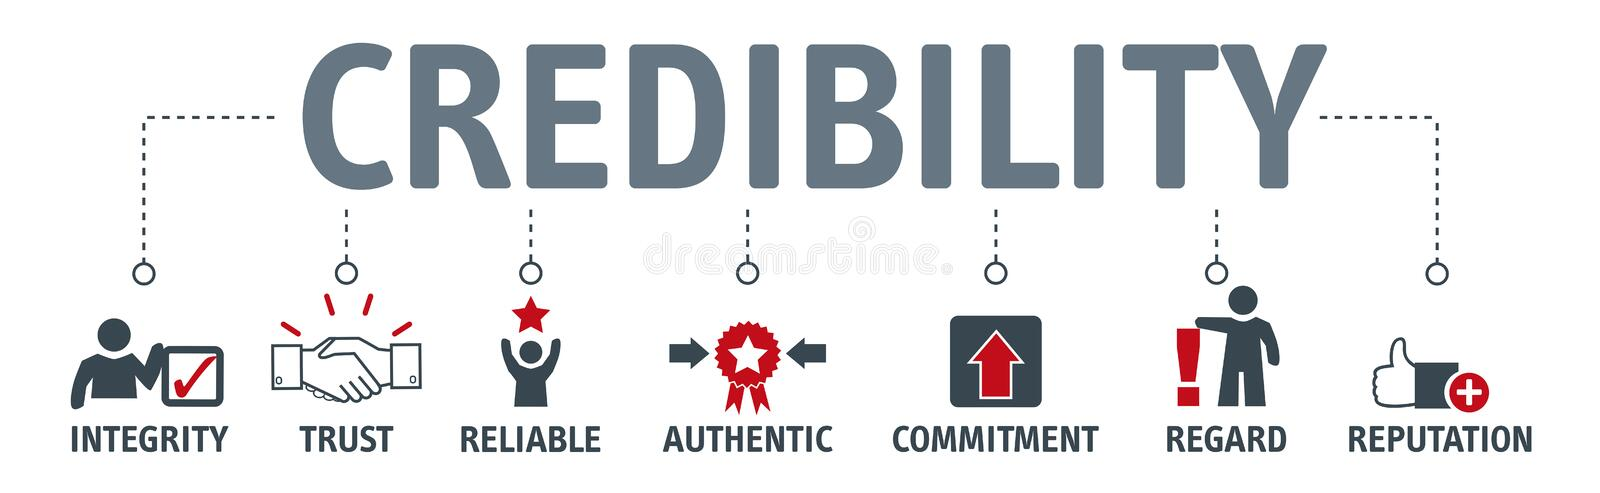 Credibility building concept. Banner with keywords and vector il vector illustration